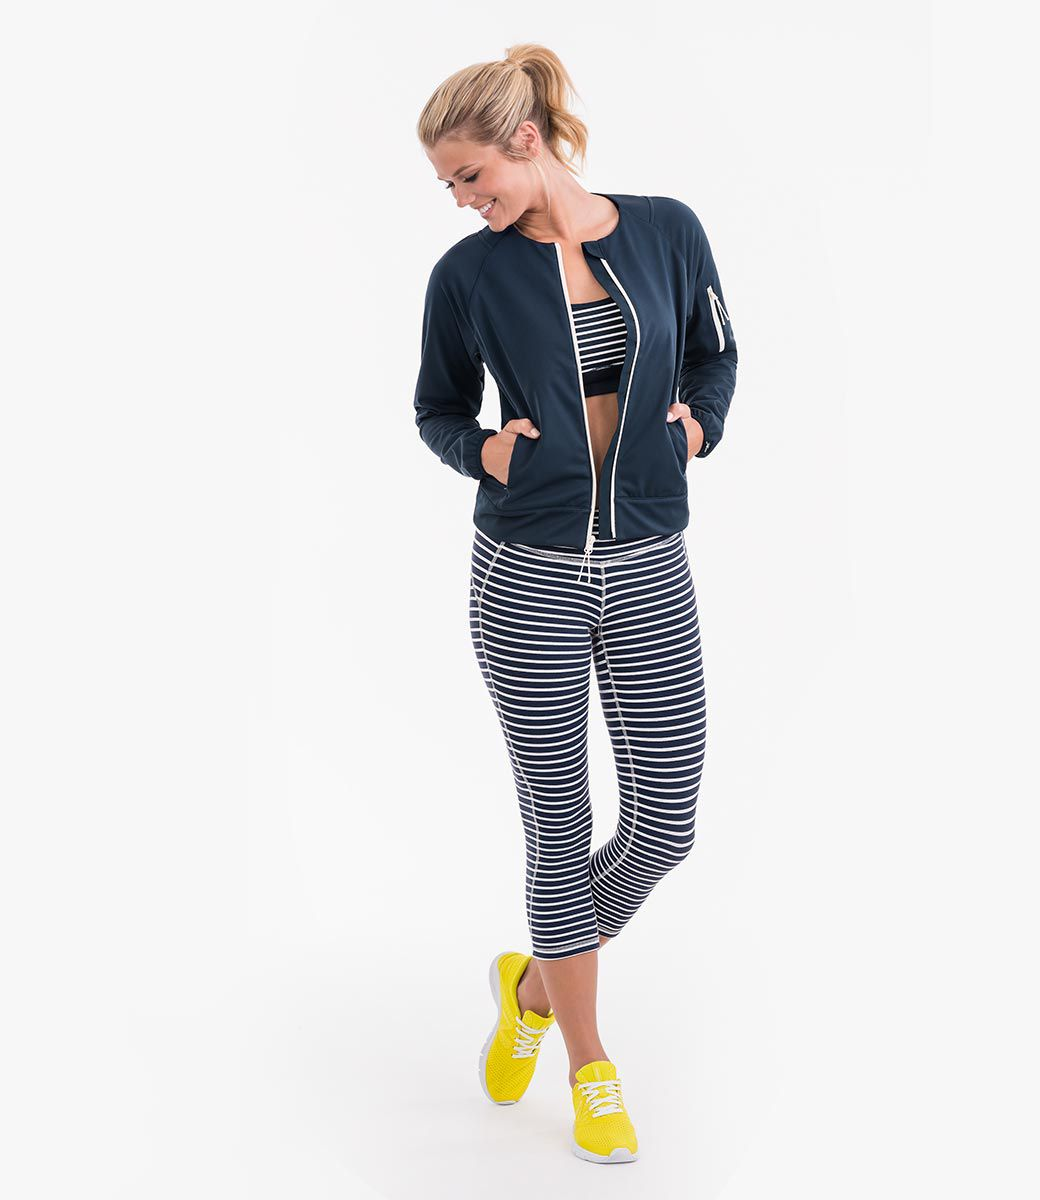 New Balance US Womens October JCrew Outfit 11,